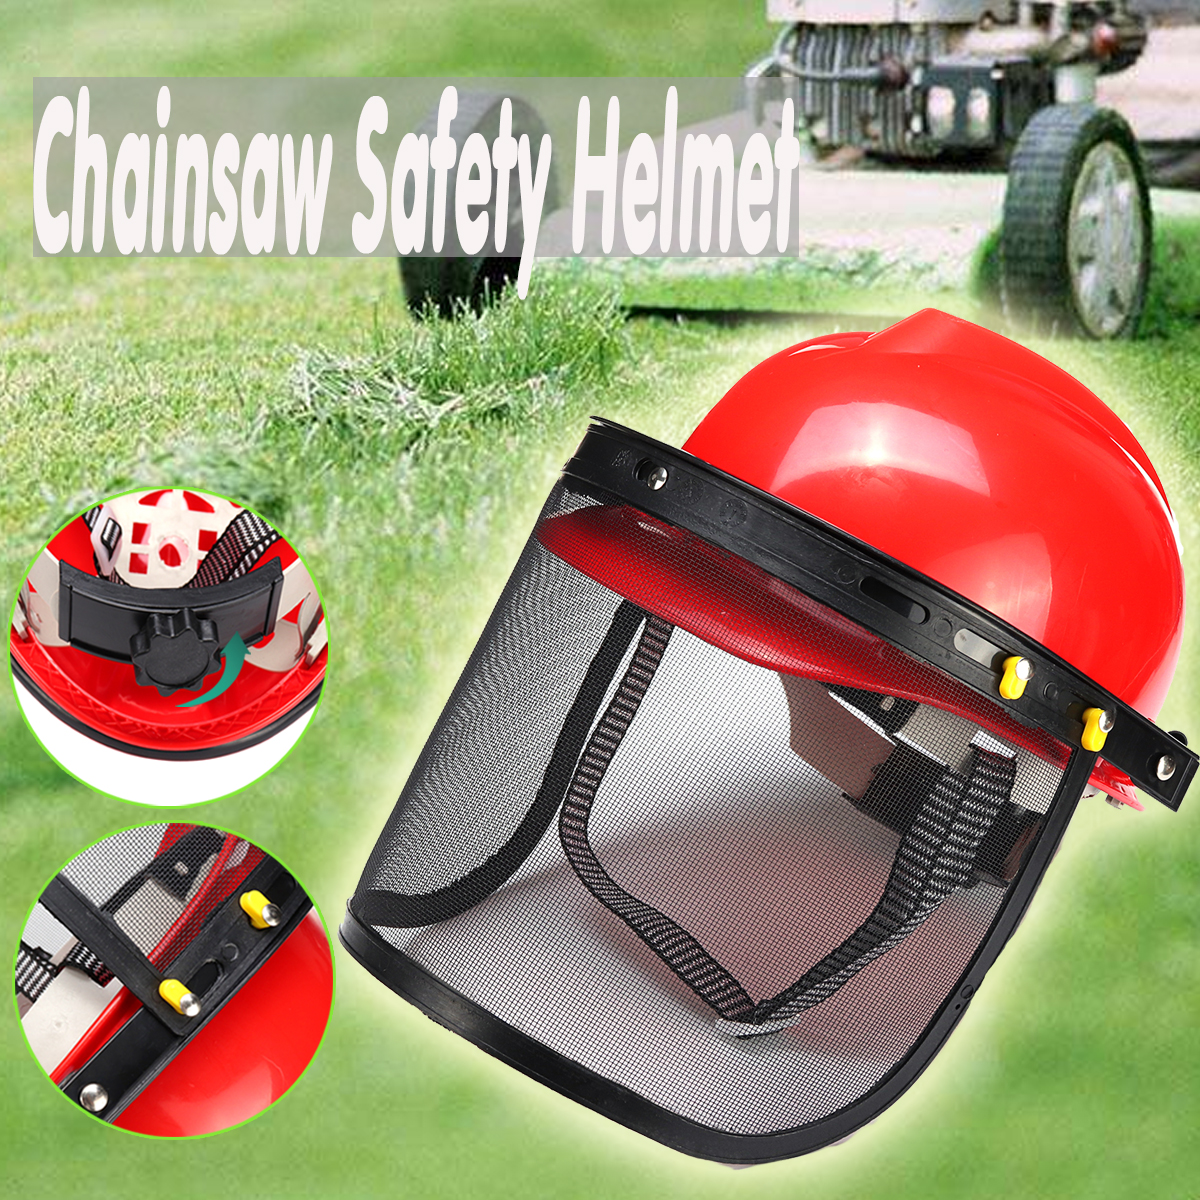 Chainsaw Safety Helmet Brushcutter Trimmer Protective Hat  Forestry Visor Protection Logging